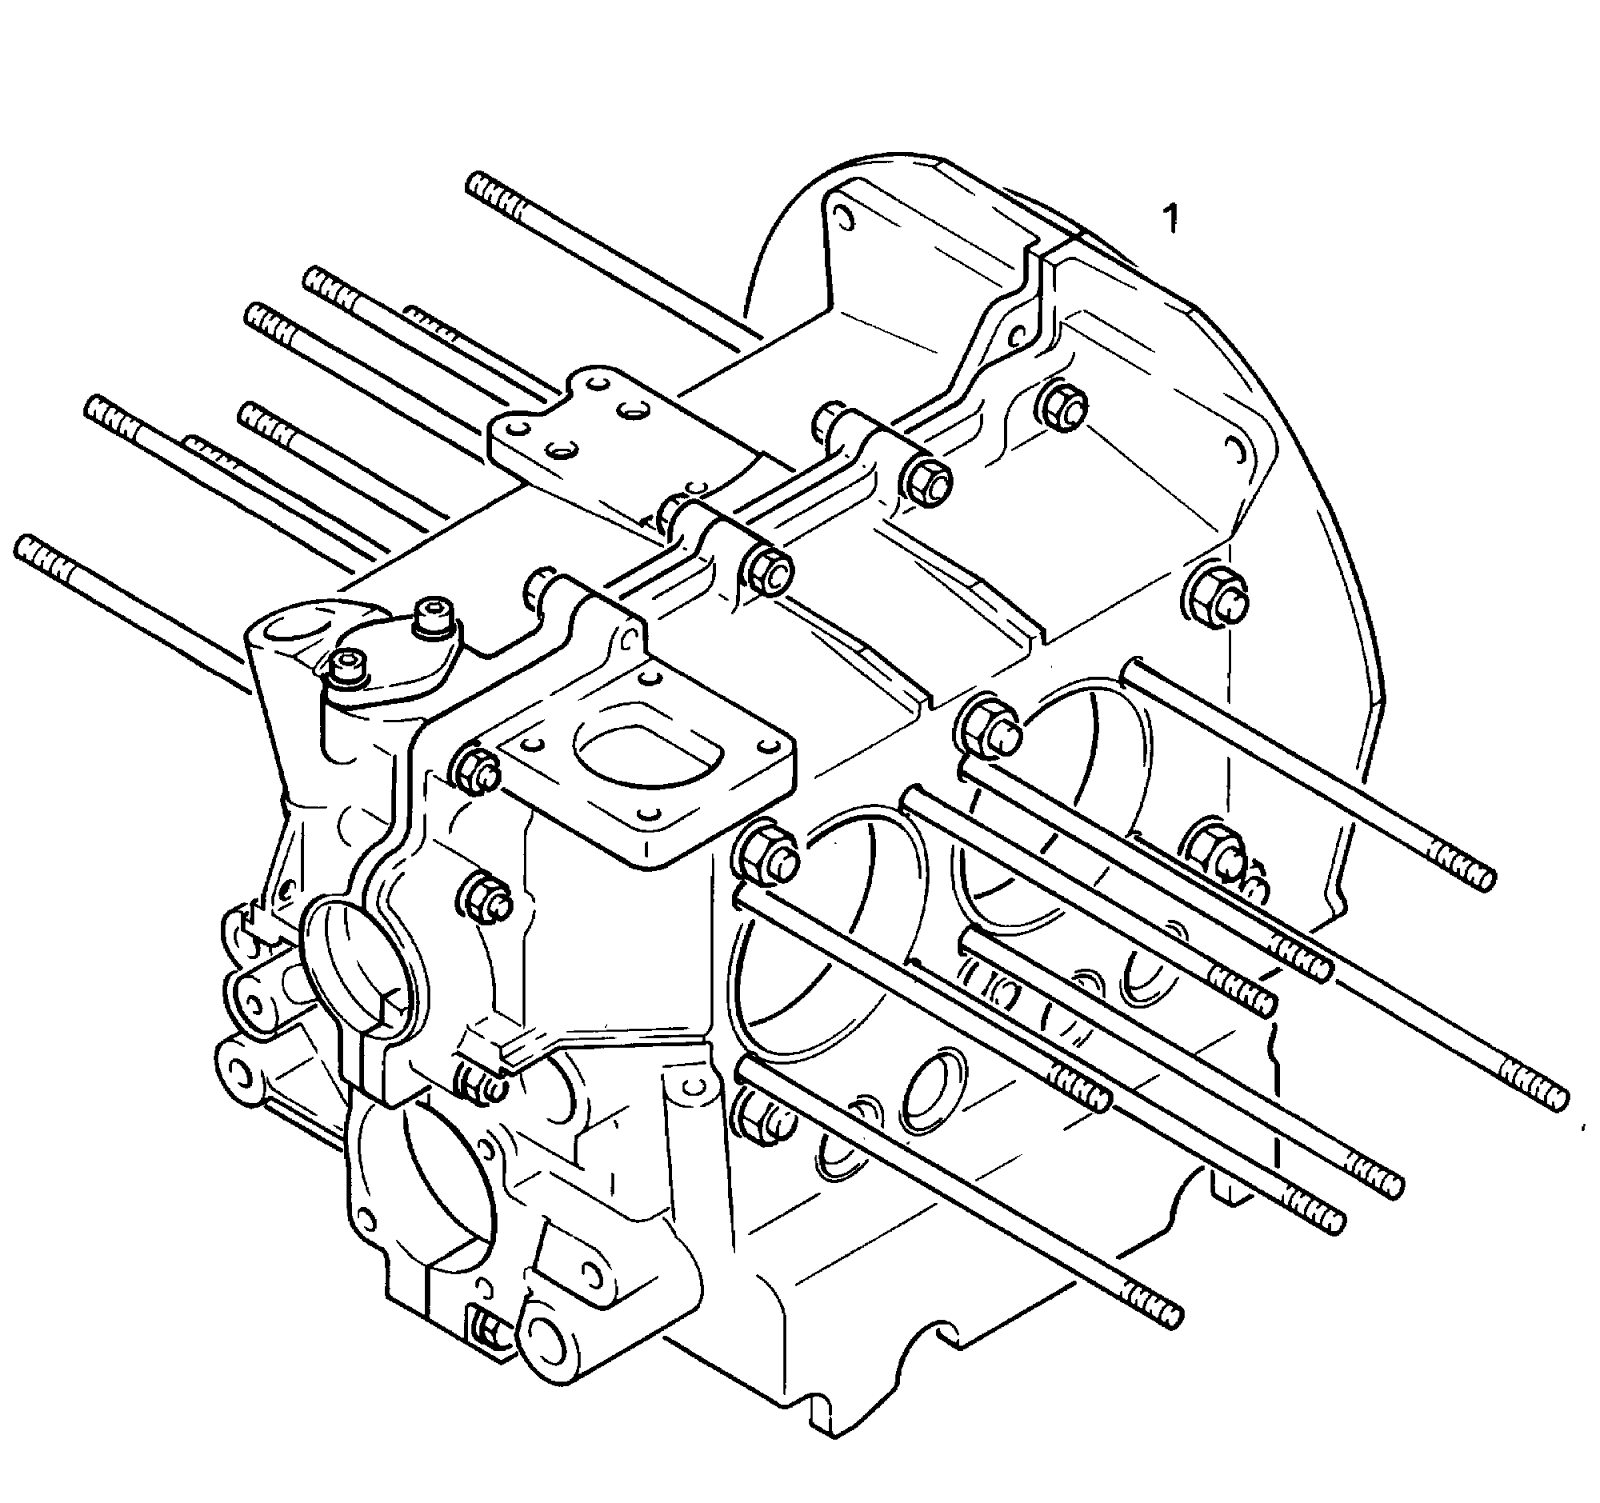 vw beetle wiring diagram furthermore air cooled vw 1600 engine diagram